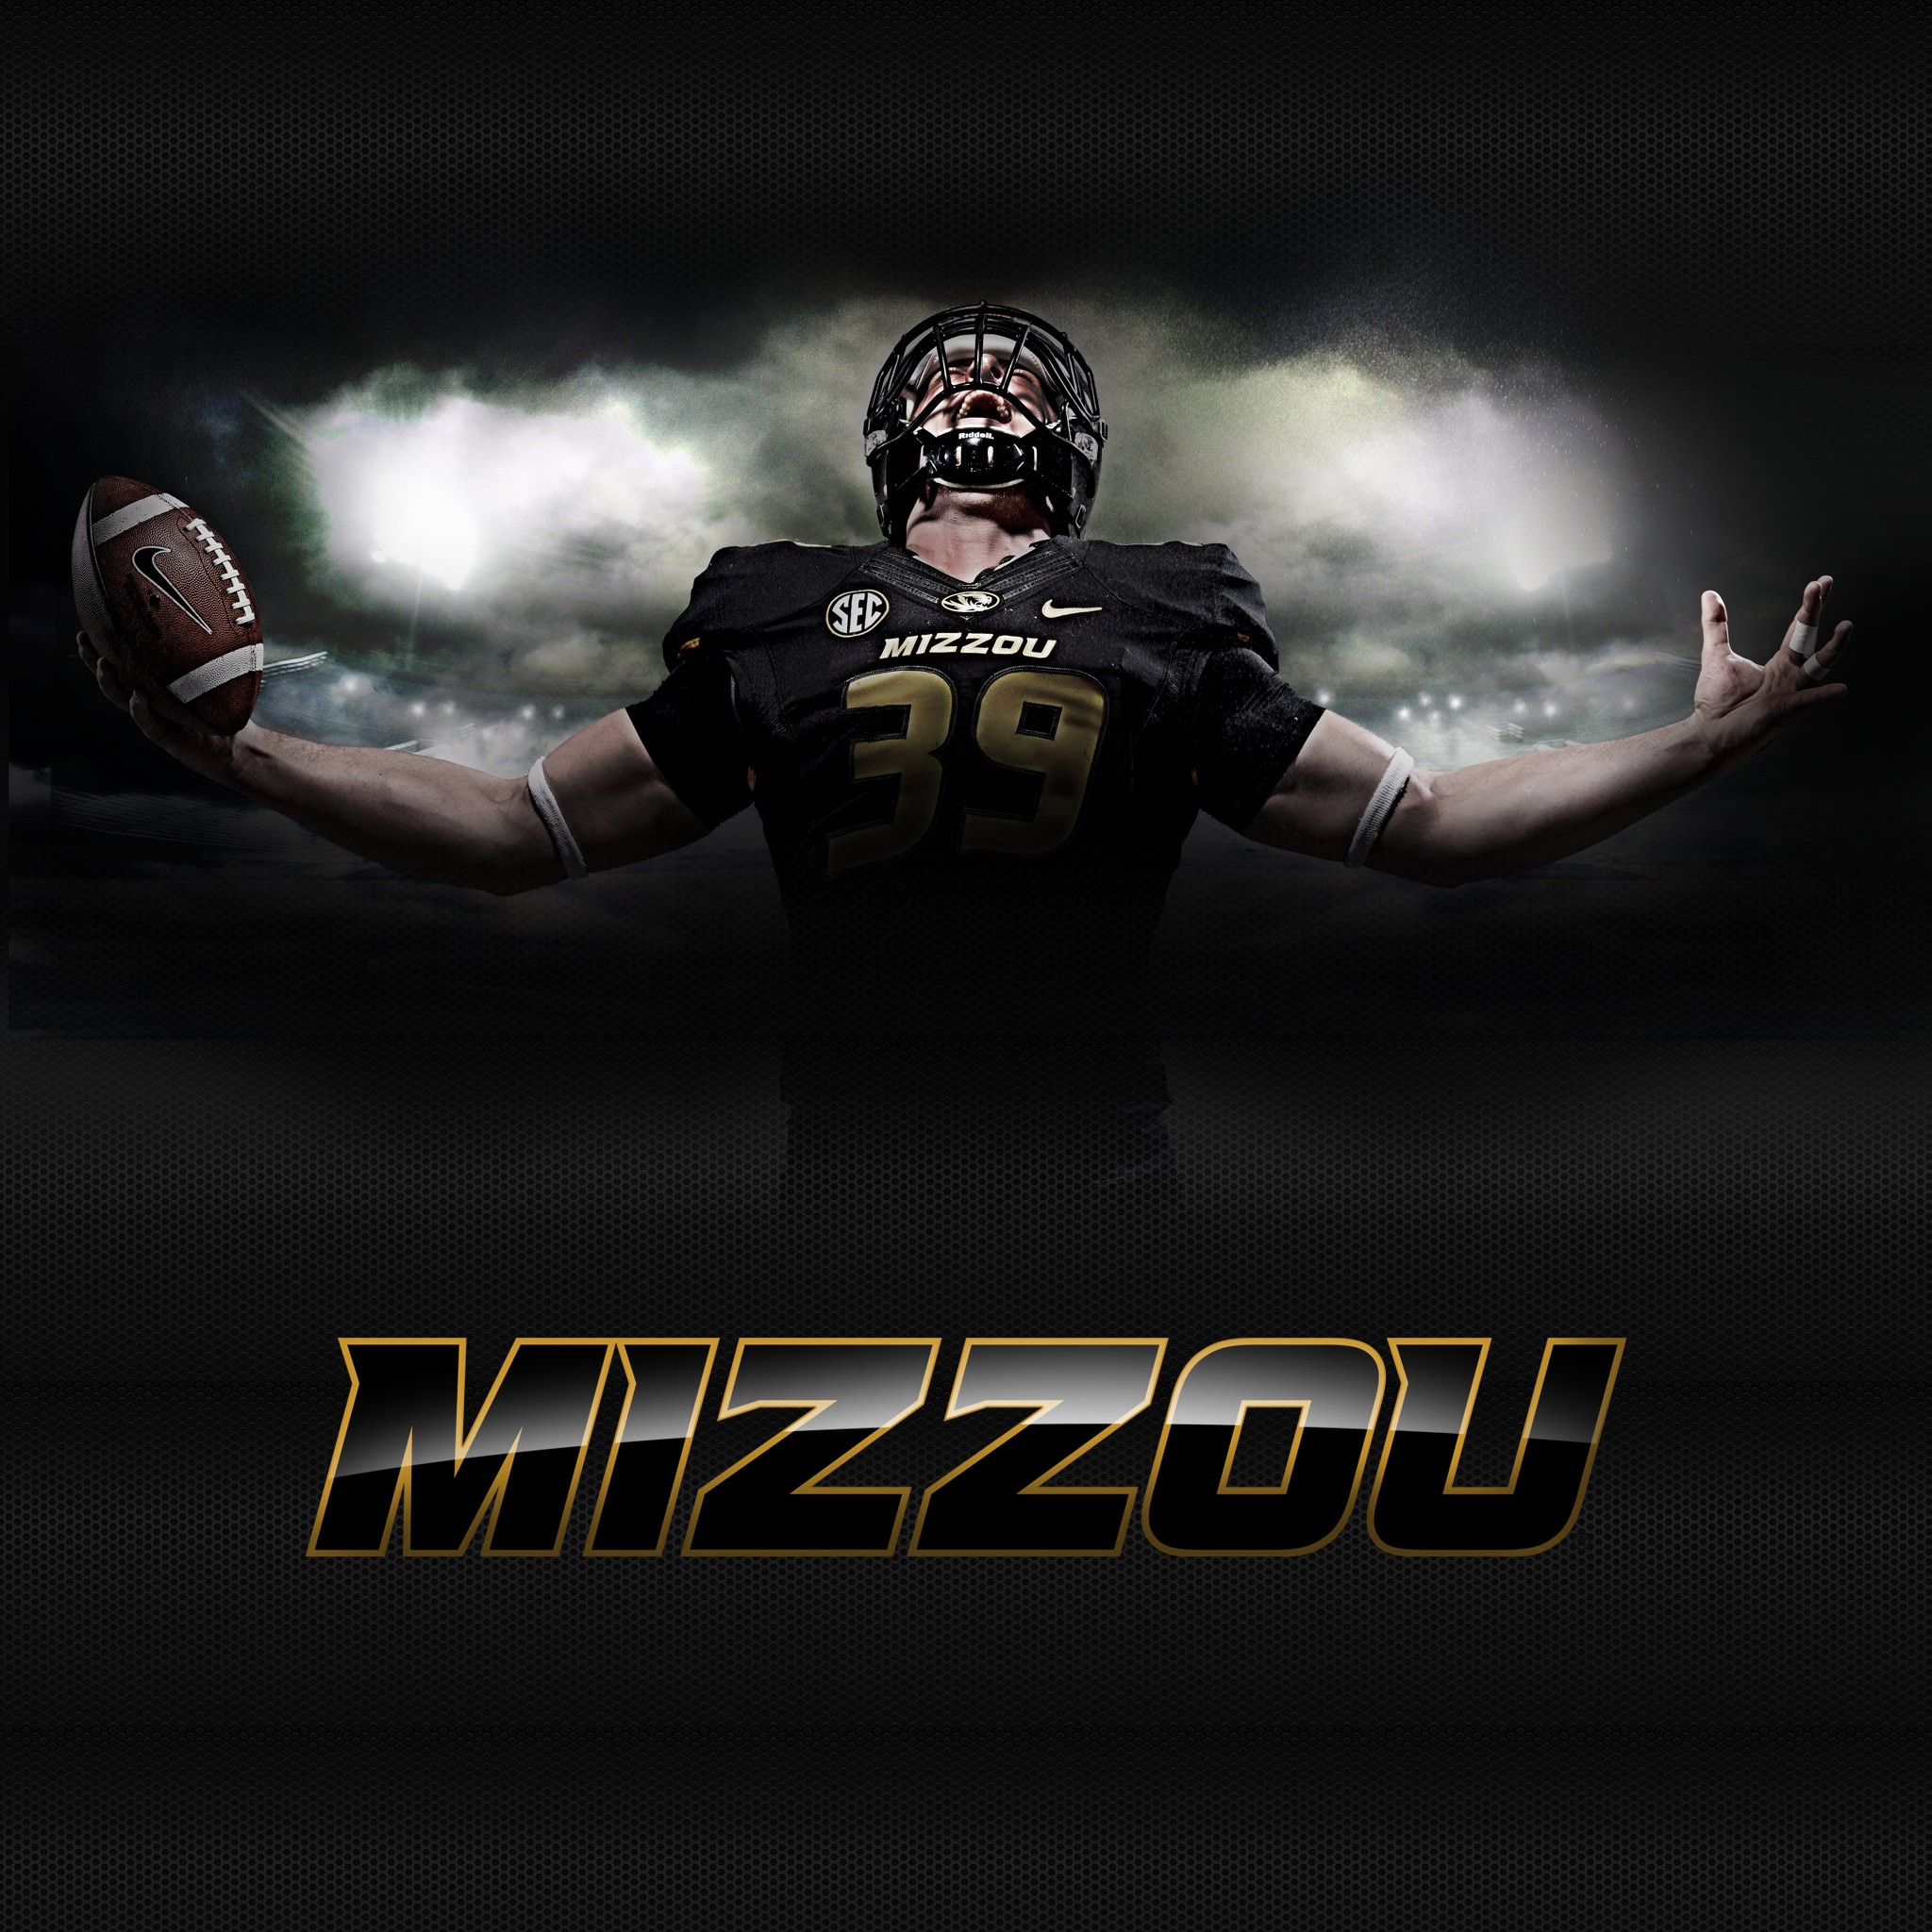 Wallpapers University Of Missouri Mizzou Tigers Ipad Wallpapers 2048x2048